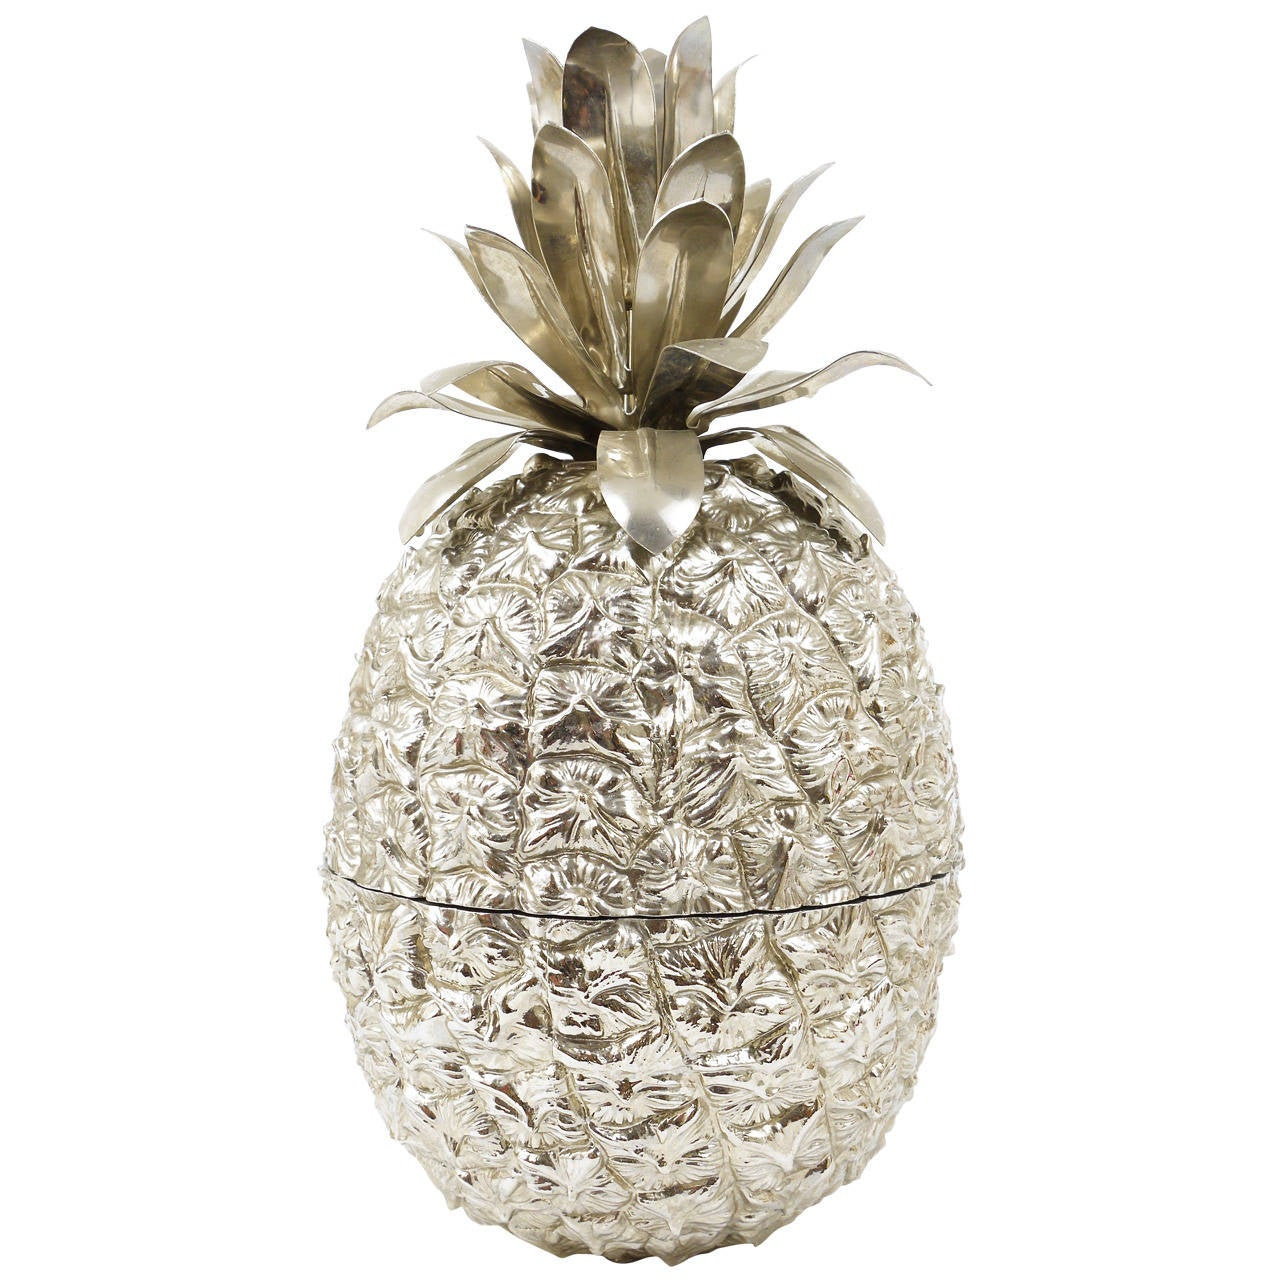 Beautiful Pineapple Ice Bucket in the Style of Mauro Manetti, Italy, 1970s